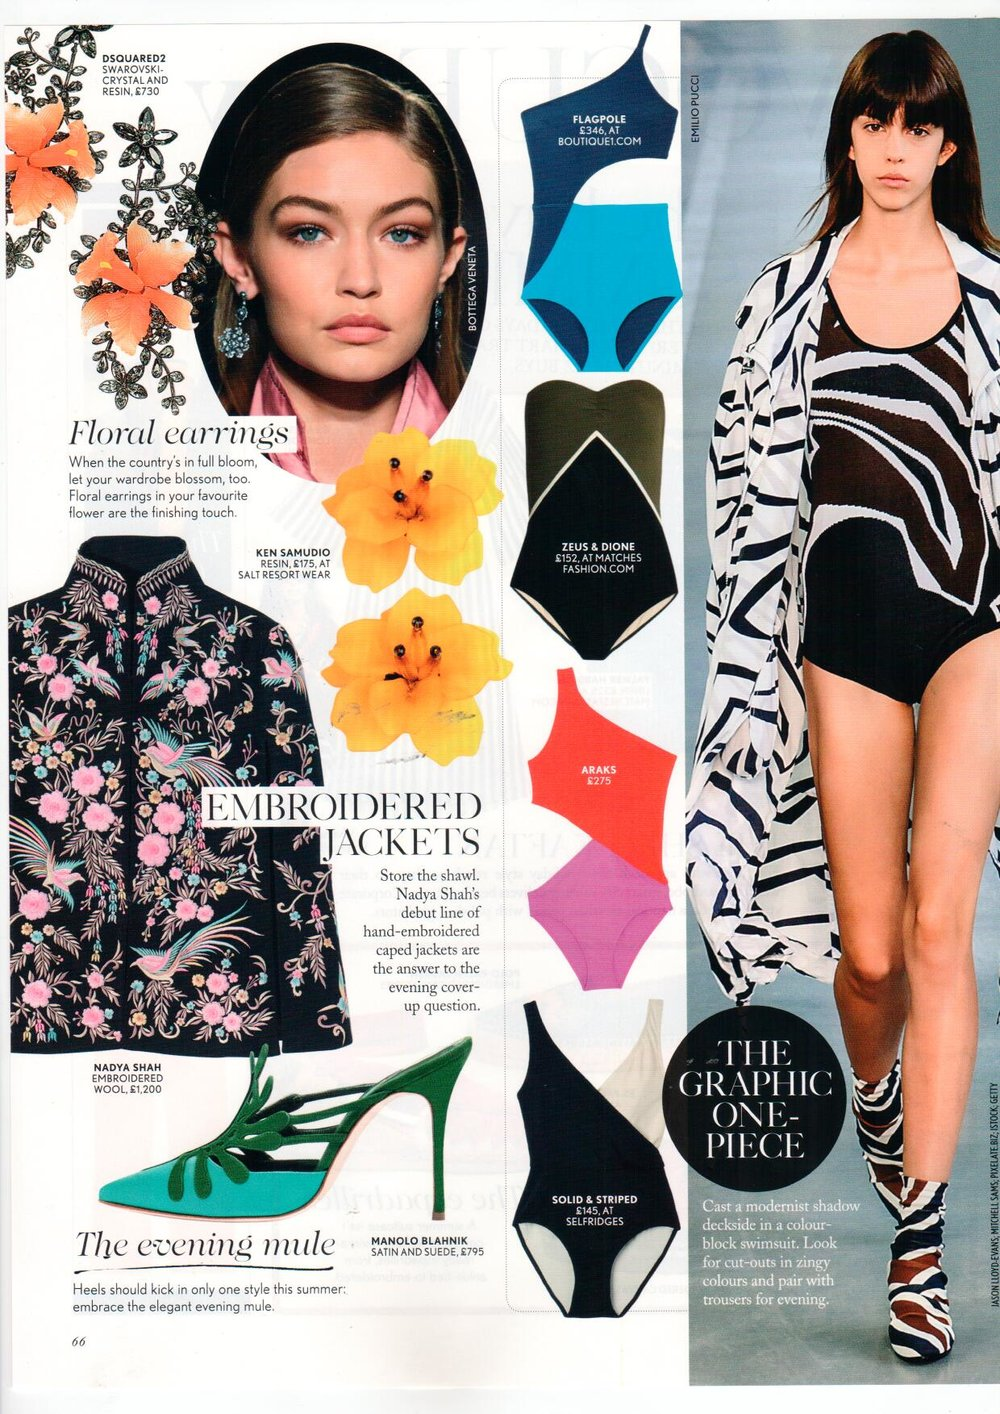 Nadya Shah in Vogue, August Issue Coverage.jpg